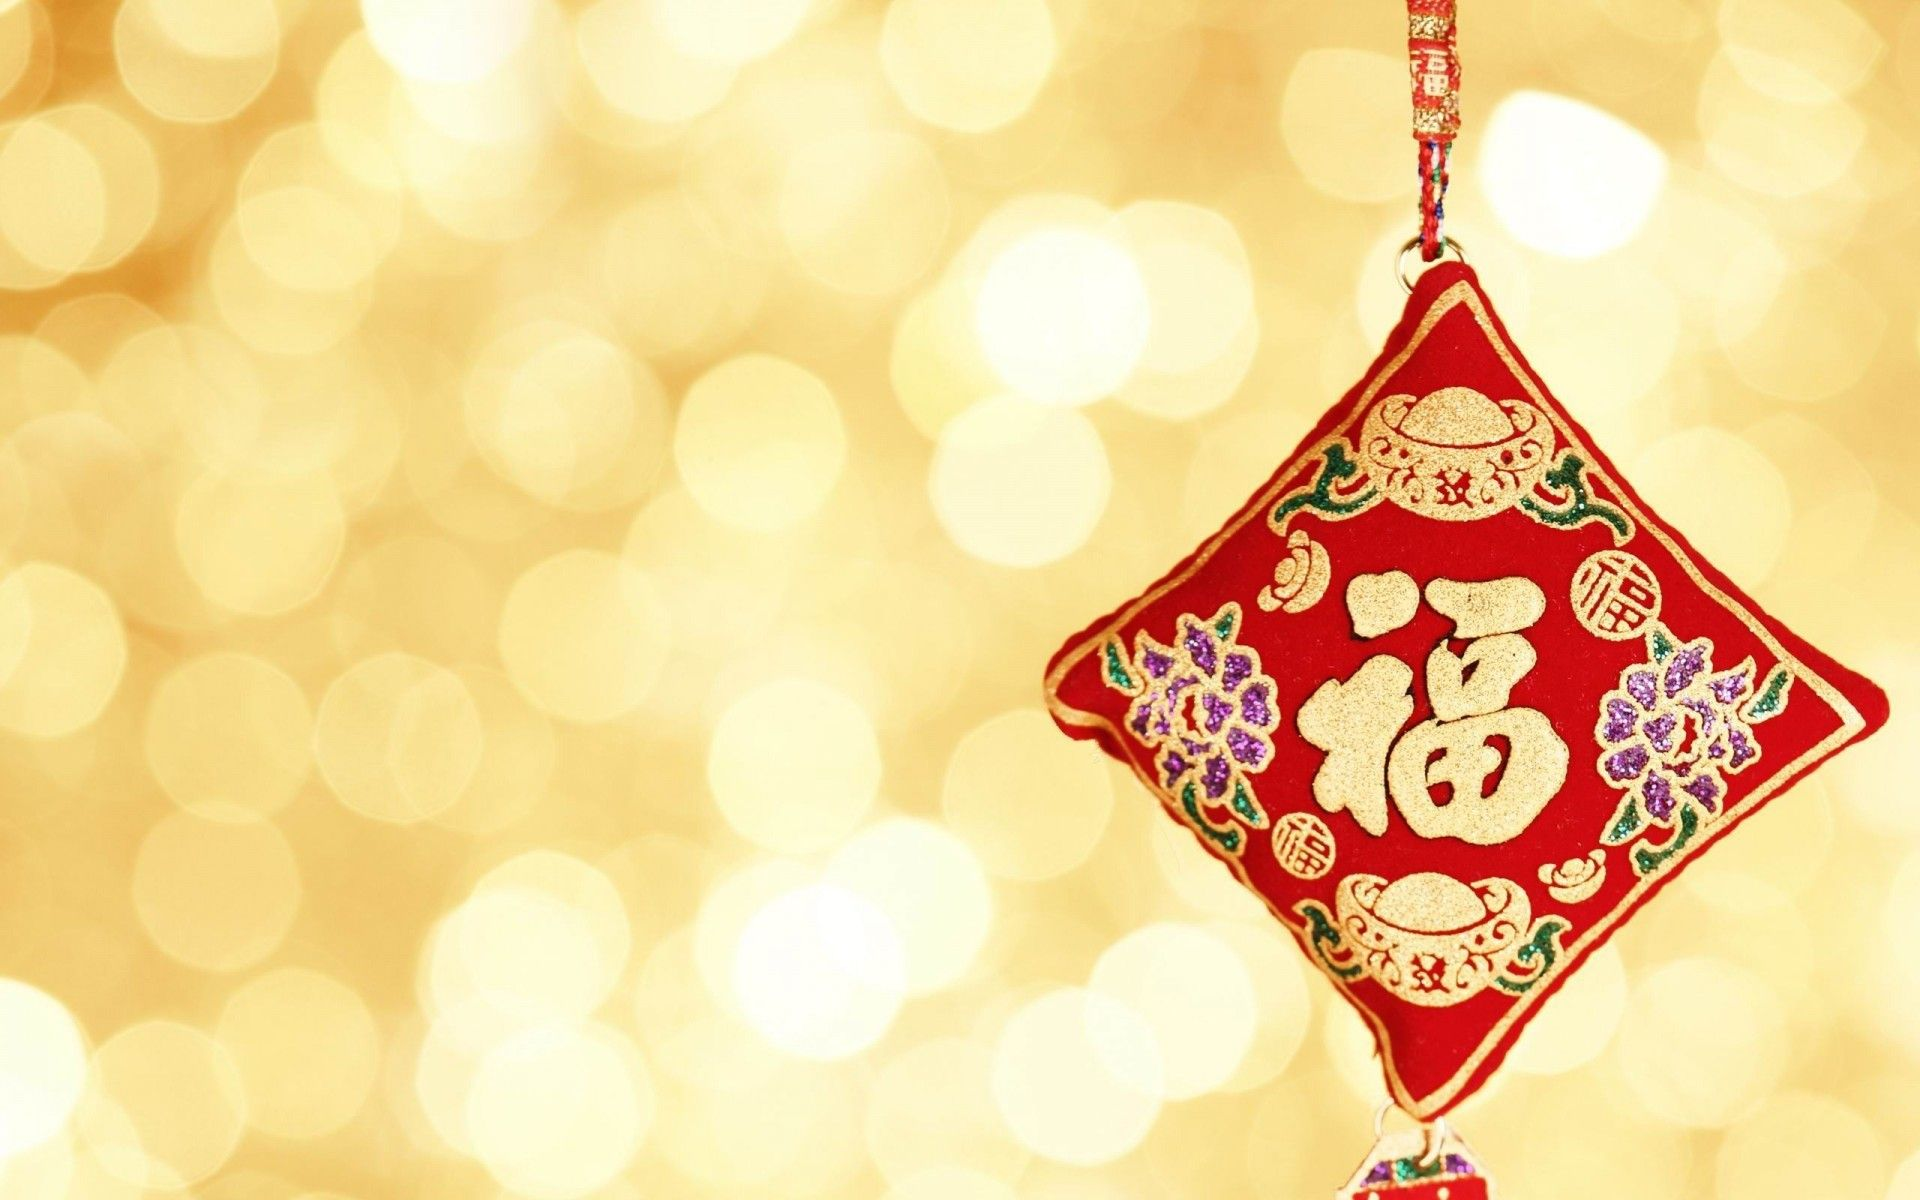 chinese new year wallpaper and decoration wallpapers and pictures pinterest sports wallpapers high resolution wallpapers and movie wallpapers